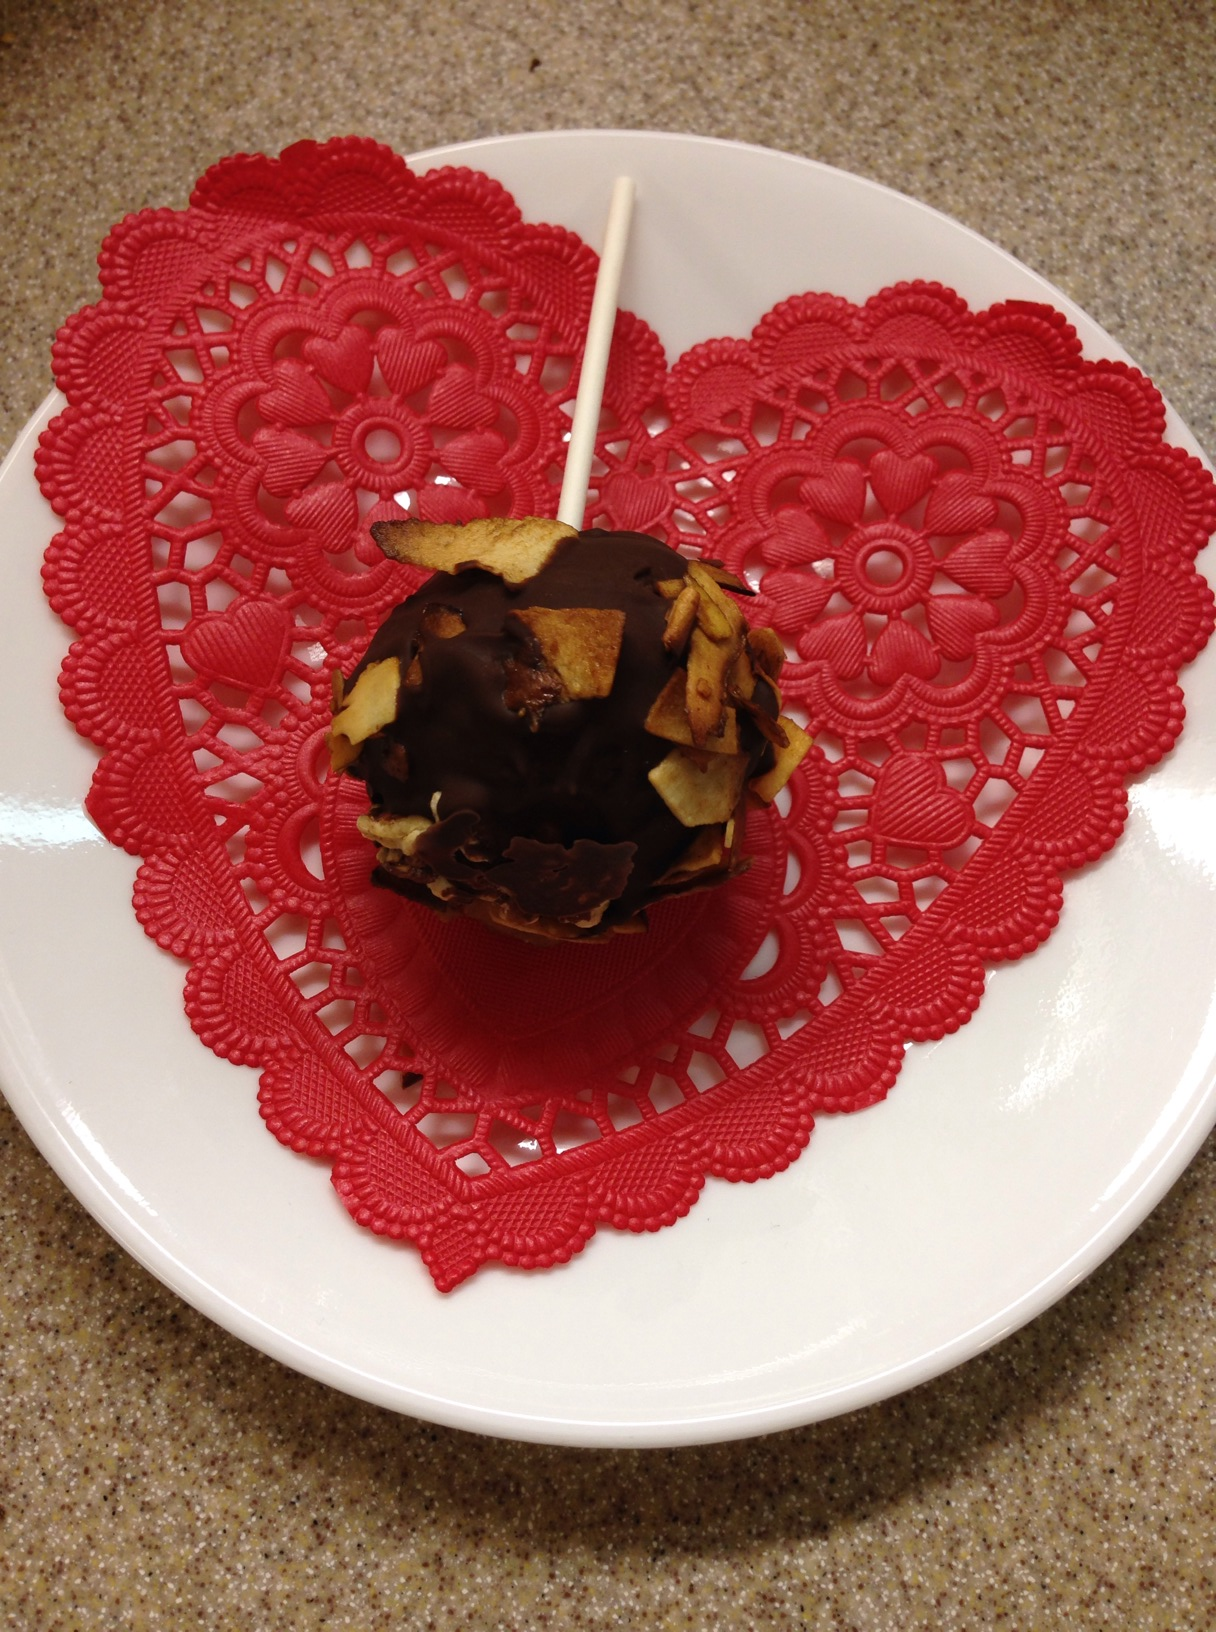 Image Result For Cake Balls Coating Chocolate Chips